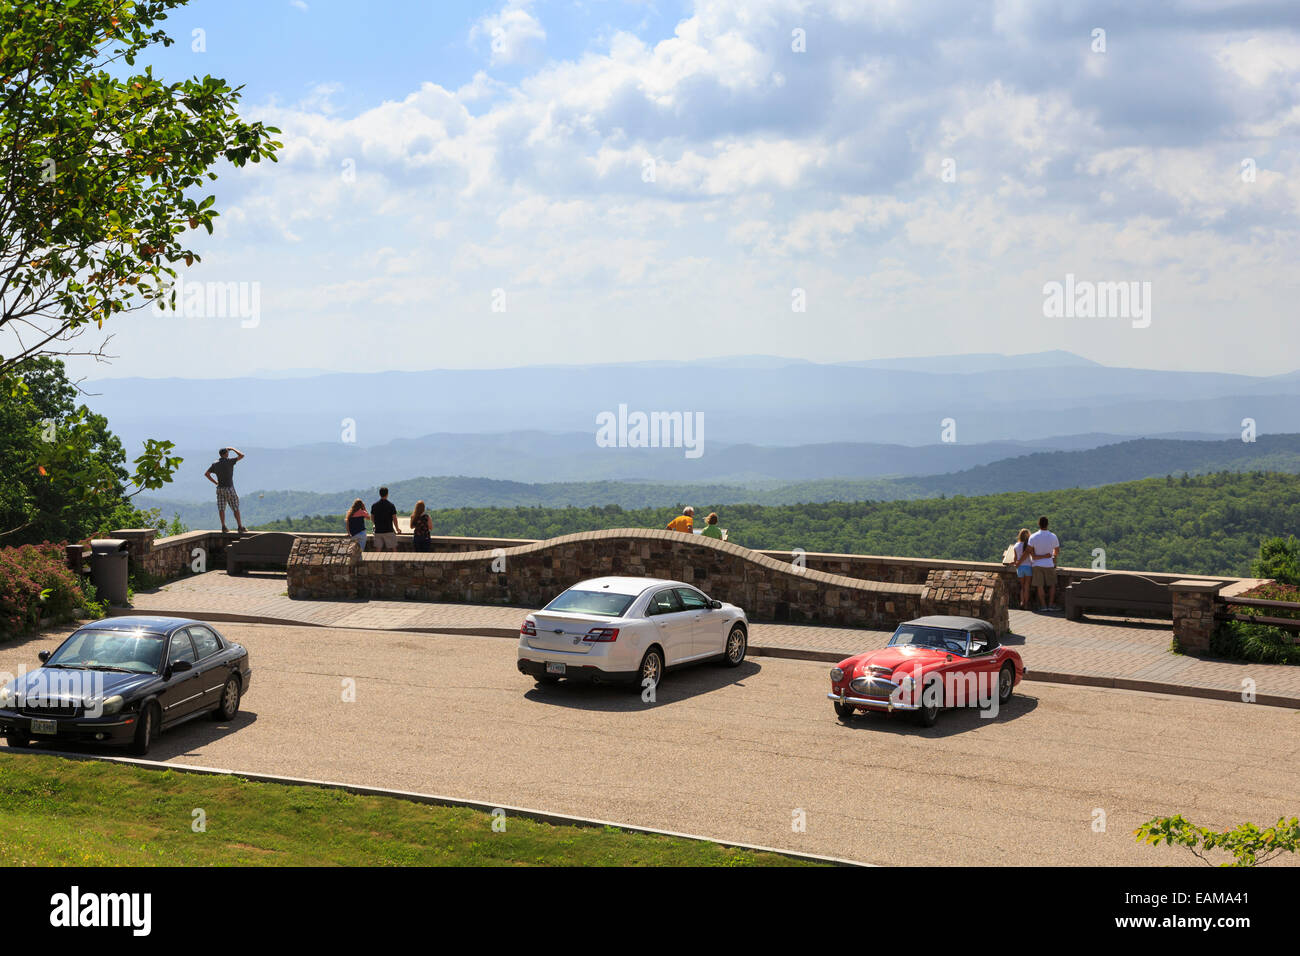 Dan Ingalls Overlook, Bath County, Virginia near Homestead Resort - Stock Image